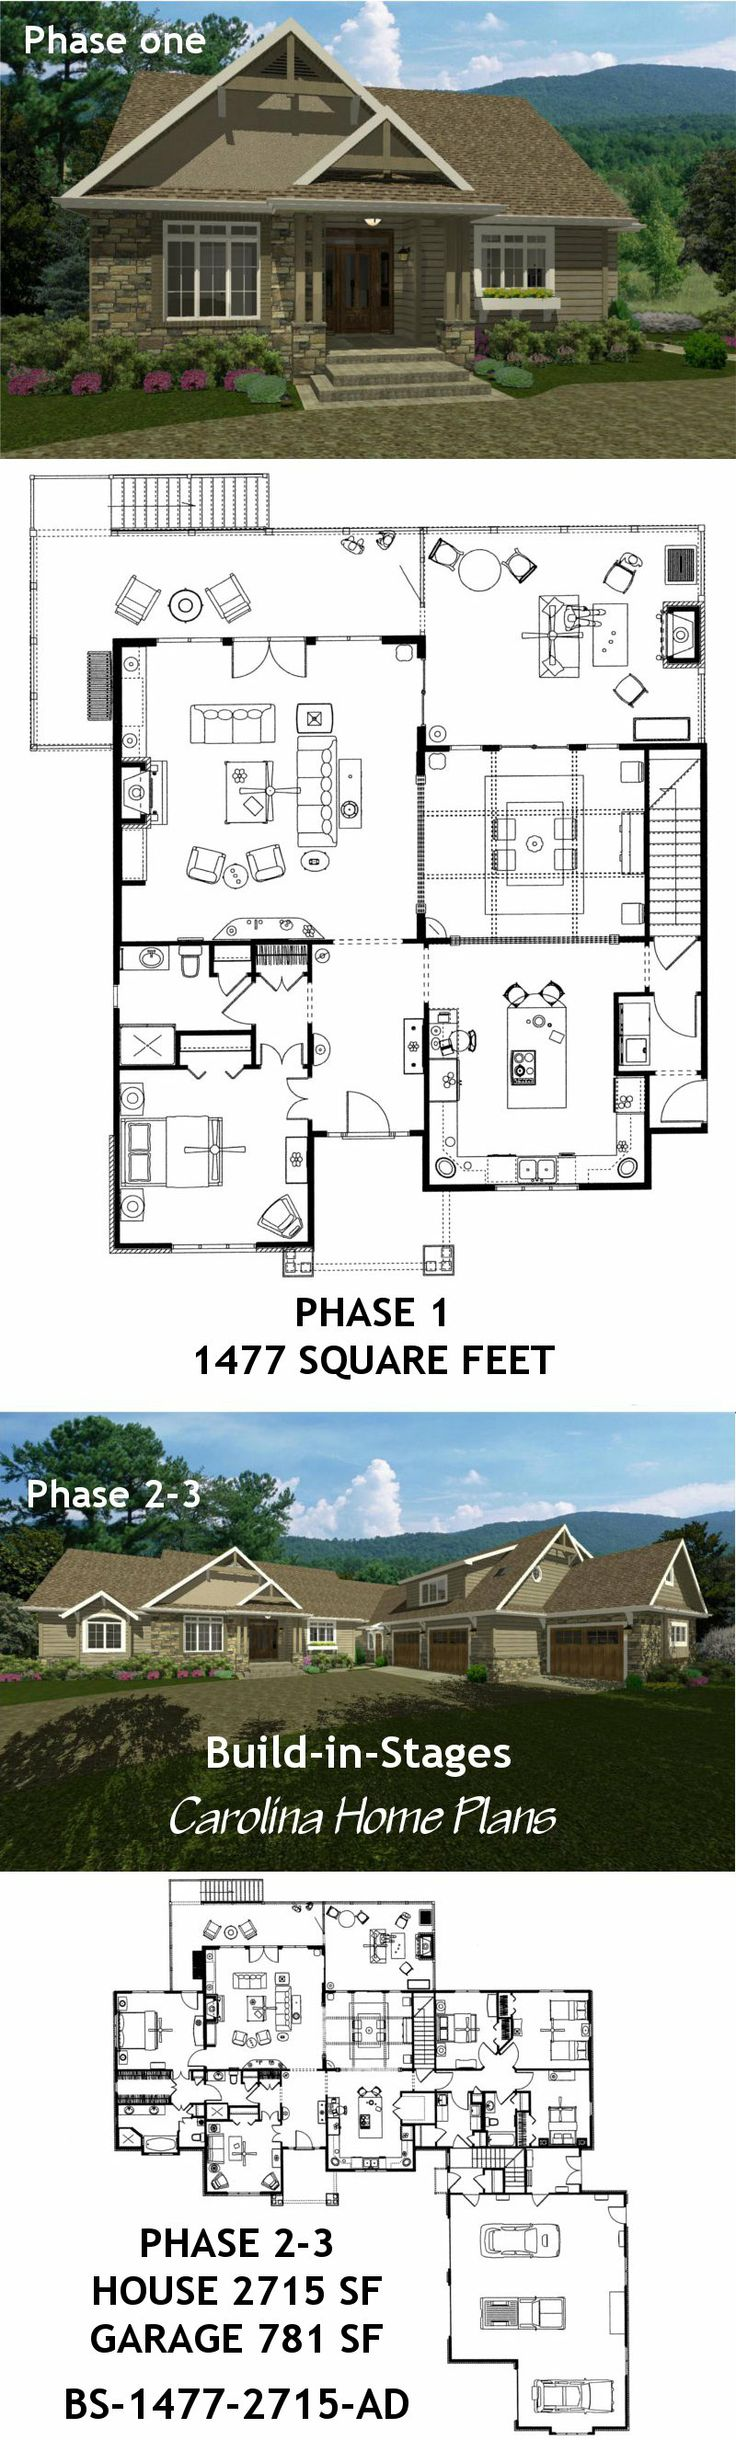 Attractive Images Of Expandable Craftsman, Flexible Build In Stages House Plan Easily  Choose A Build In Stages Expandable Open Floor Plan Homewith Views. Part 27